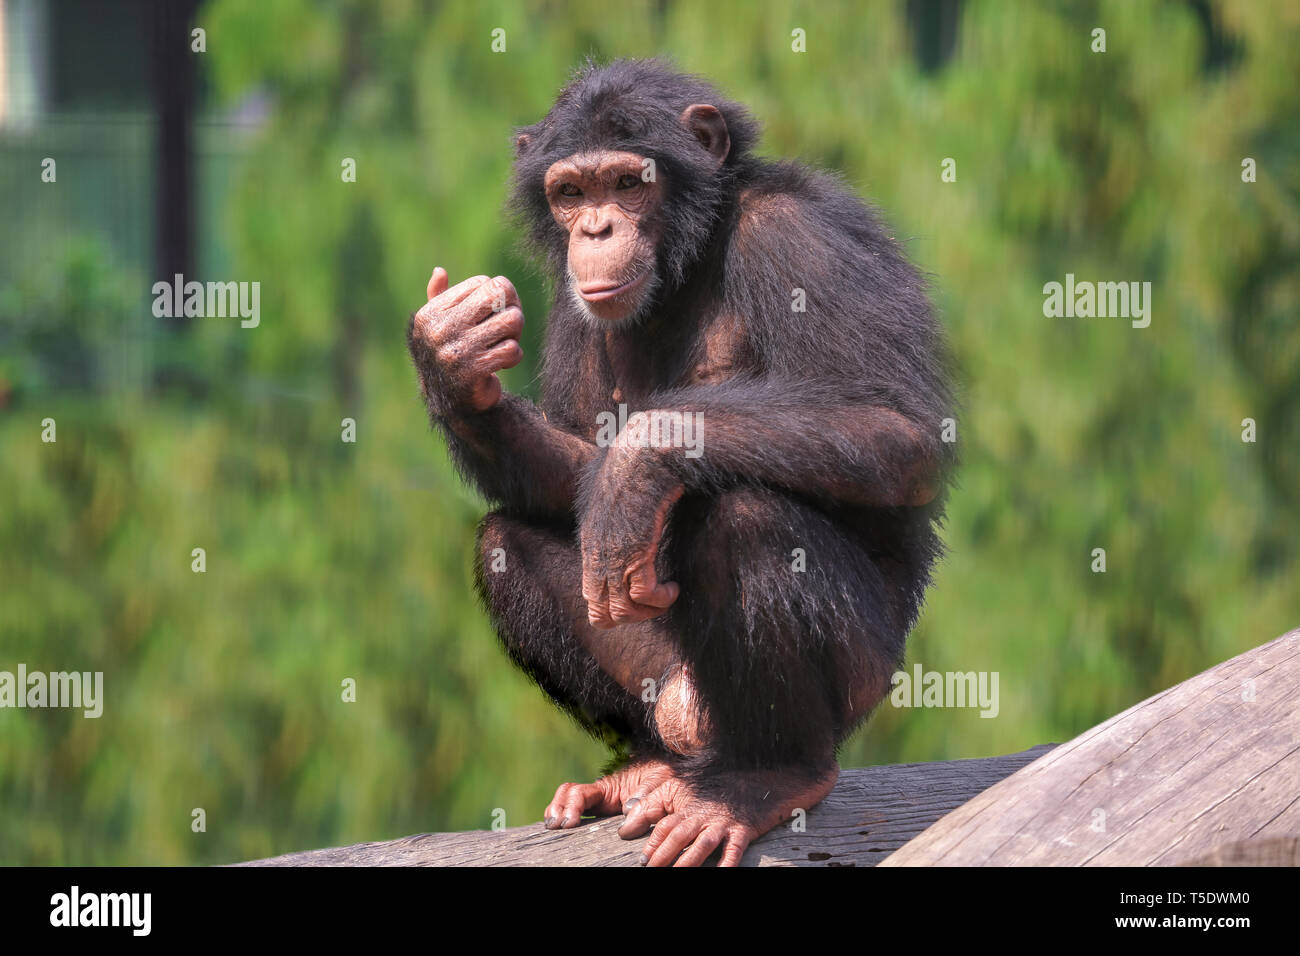 African chimpanzee at Indian wildlife sanctuary. Chimps among all apes are closest to humans in behavioral traits. - Stock Image